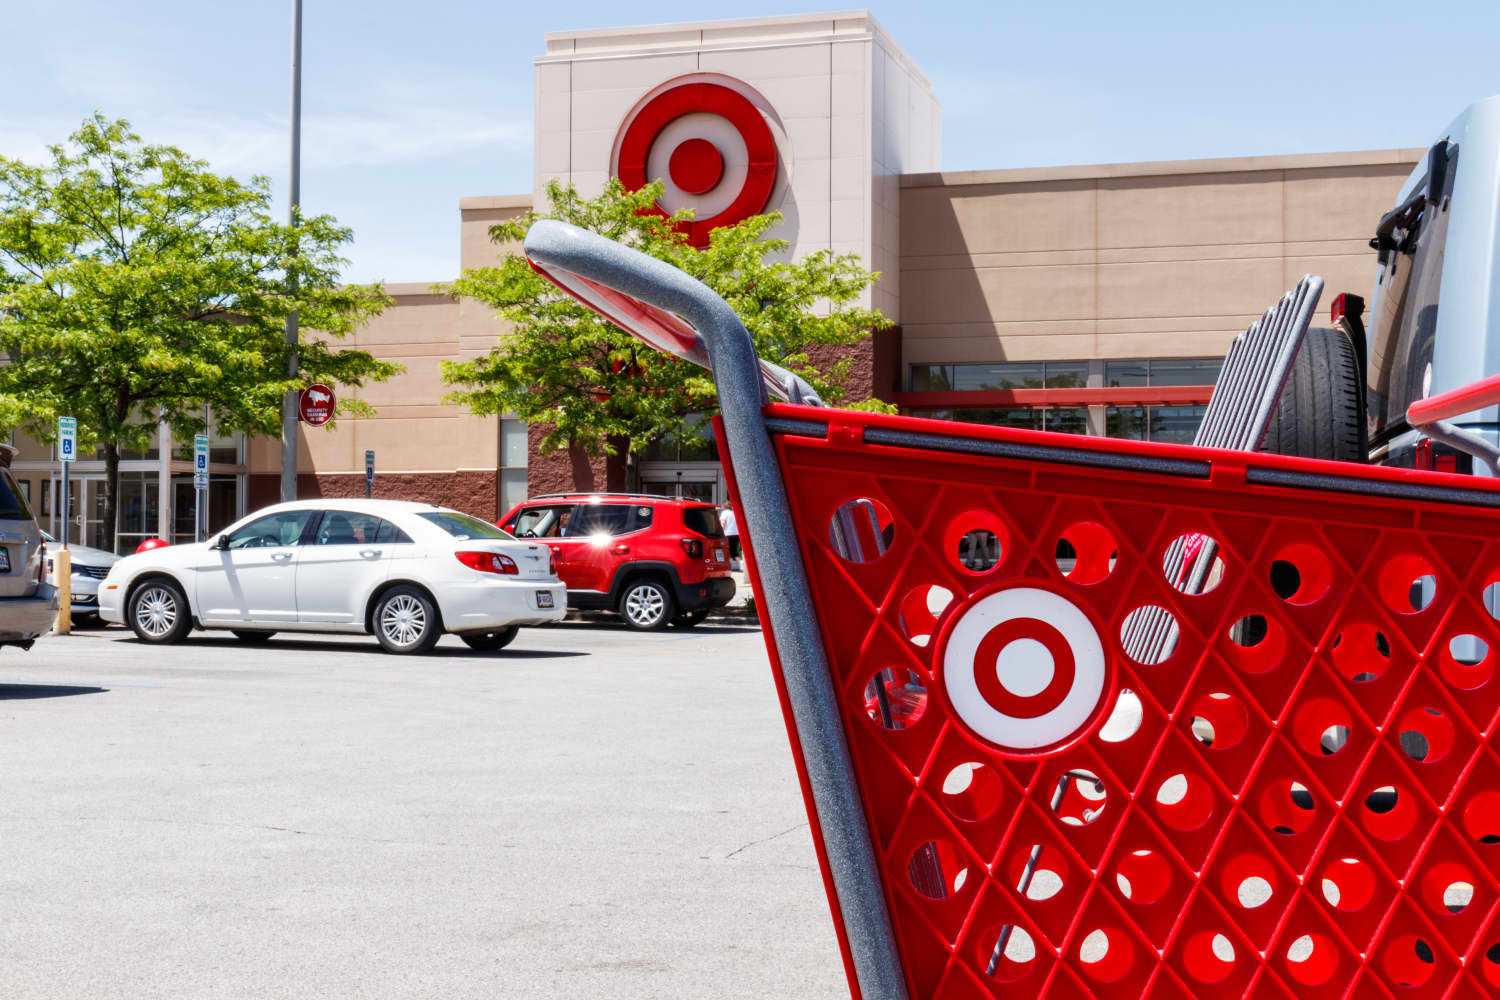 Here's How to Get a Free Gift Card With Purchase at Target This Week